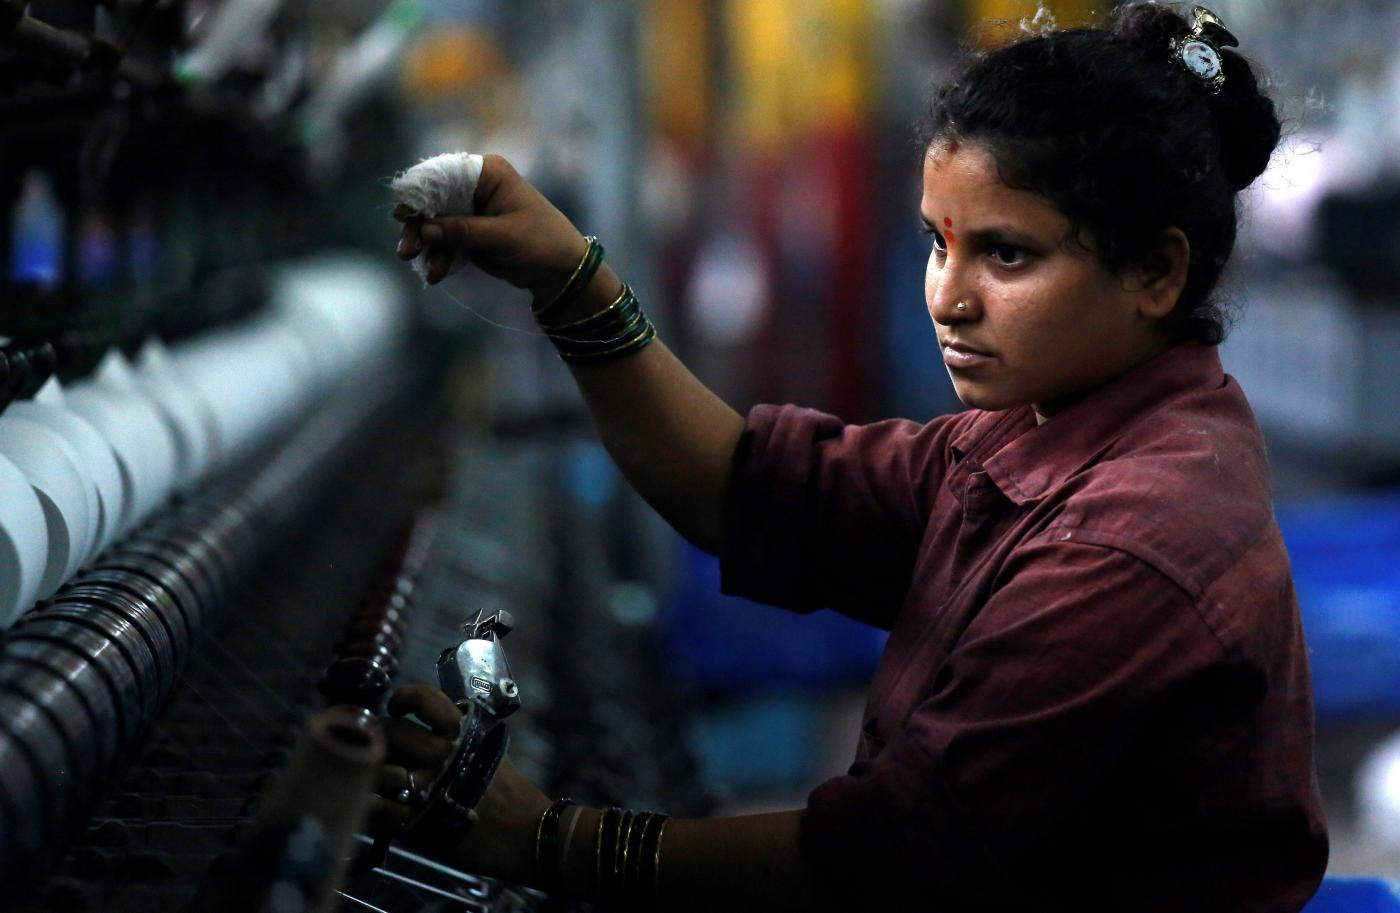 You know who can tackle India's unemployment problem? Female entrepreneurs